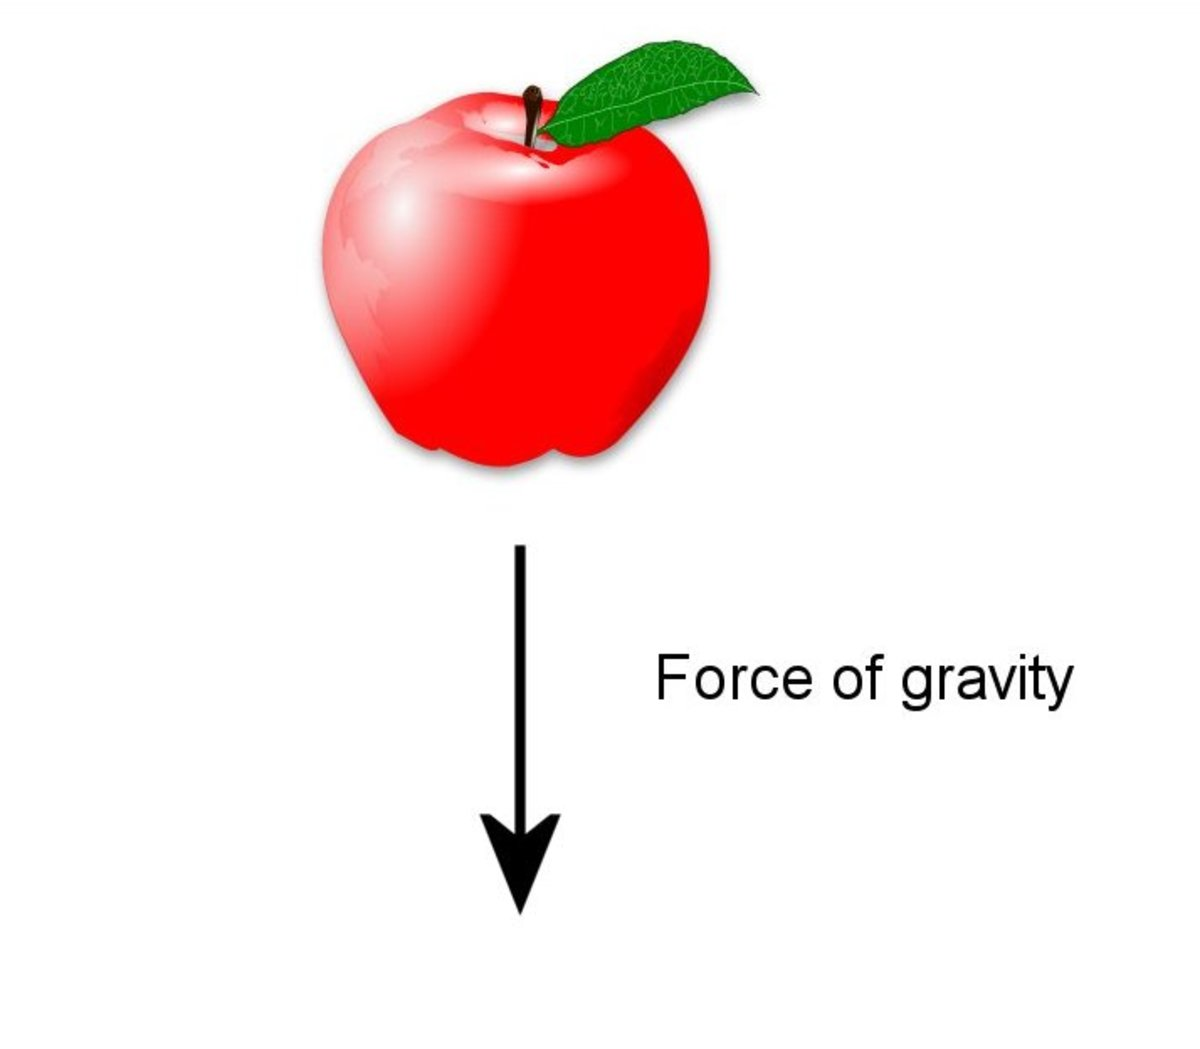 Gravity exerts a force on everything.